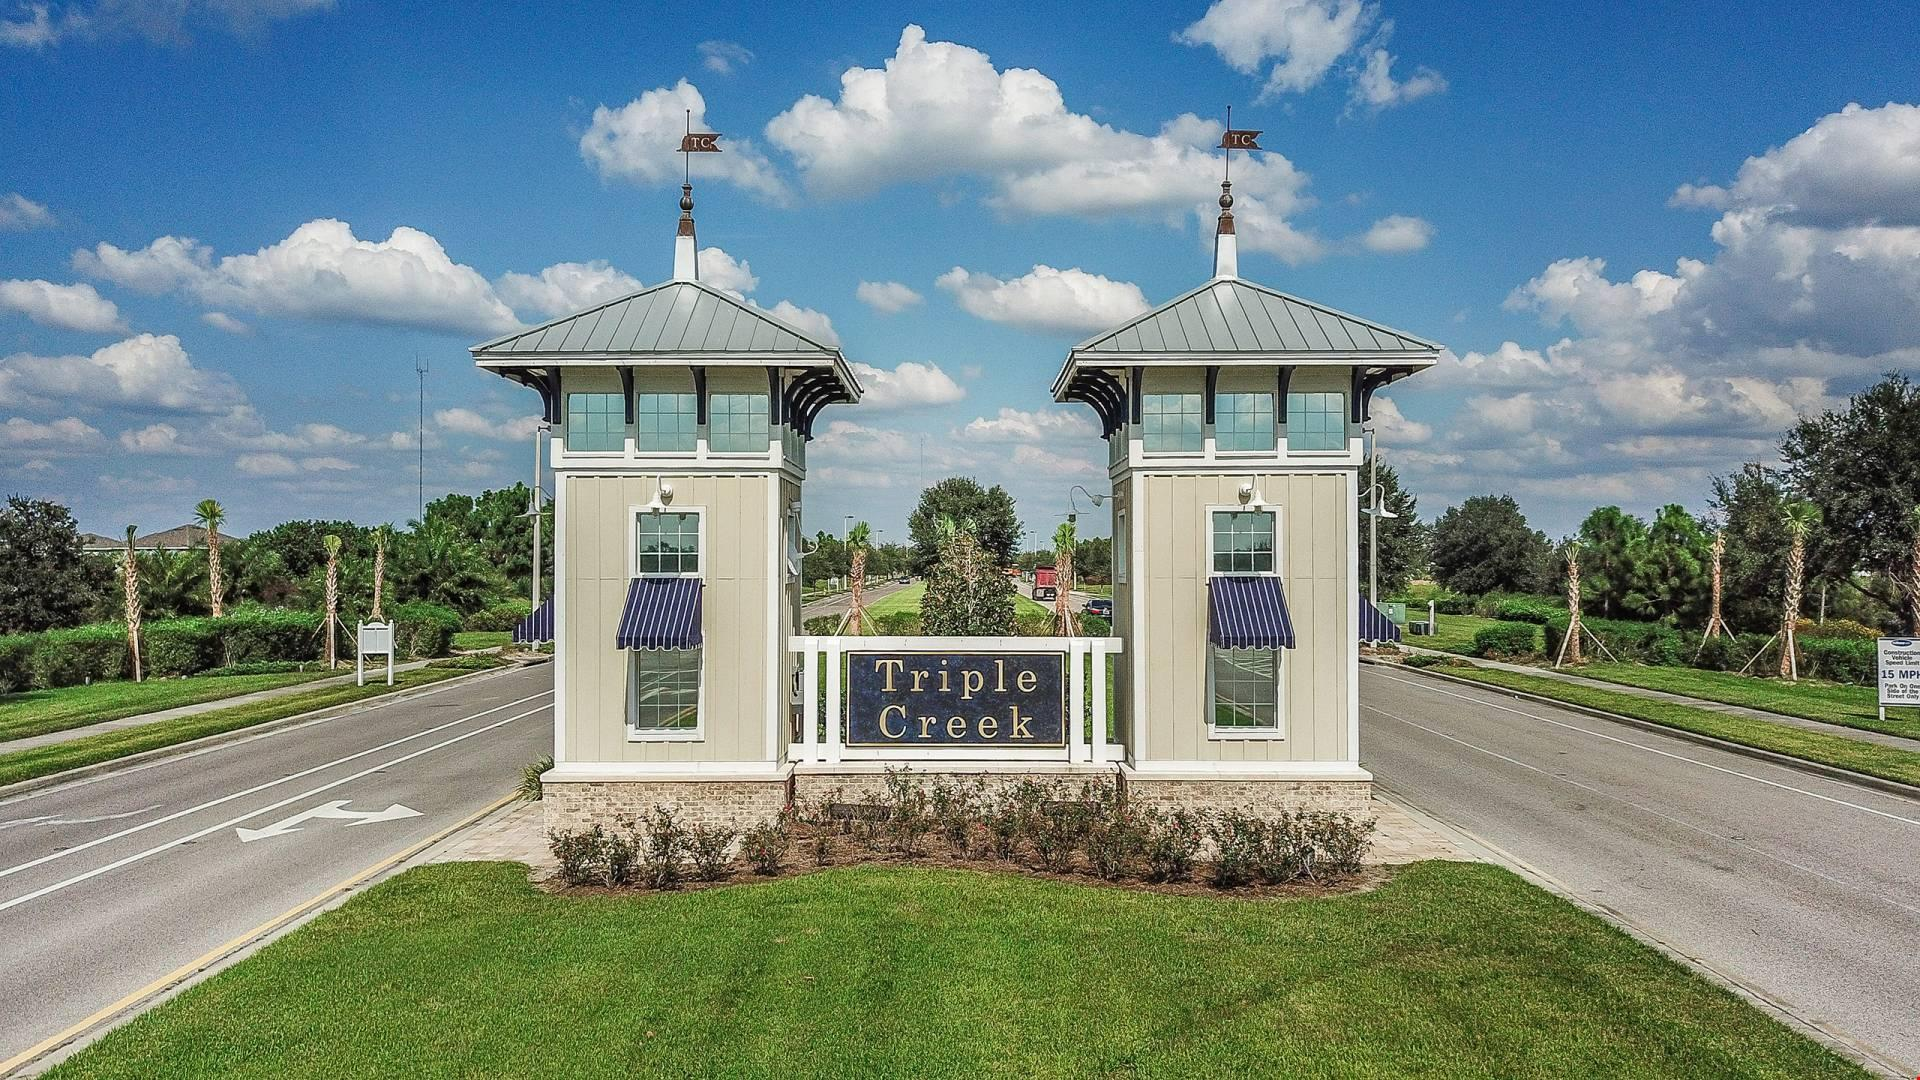 Triple Creek Riverview Florida Real Estate | Riverview Realtor | Homes for Sale | Riverview Florida